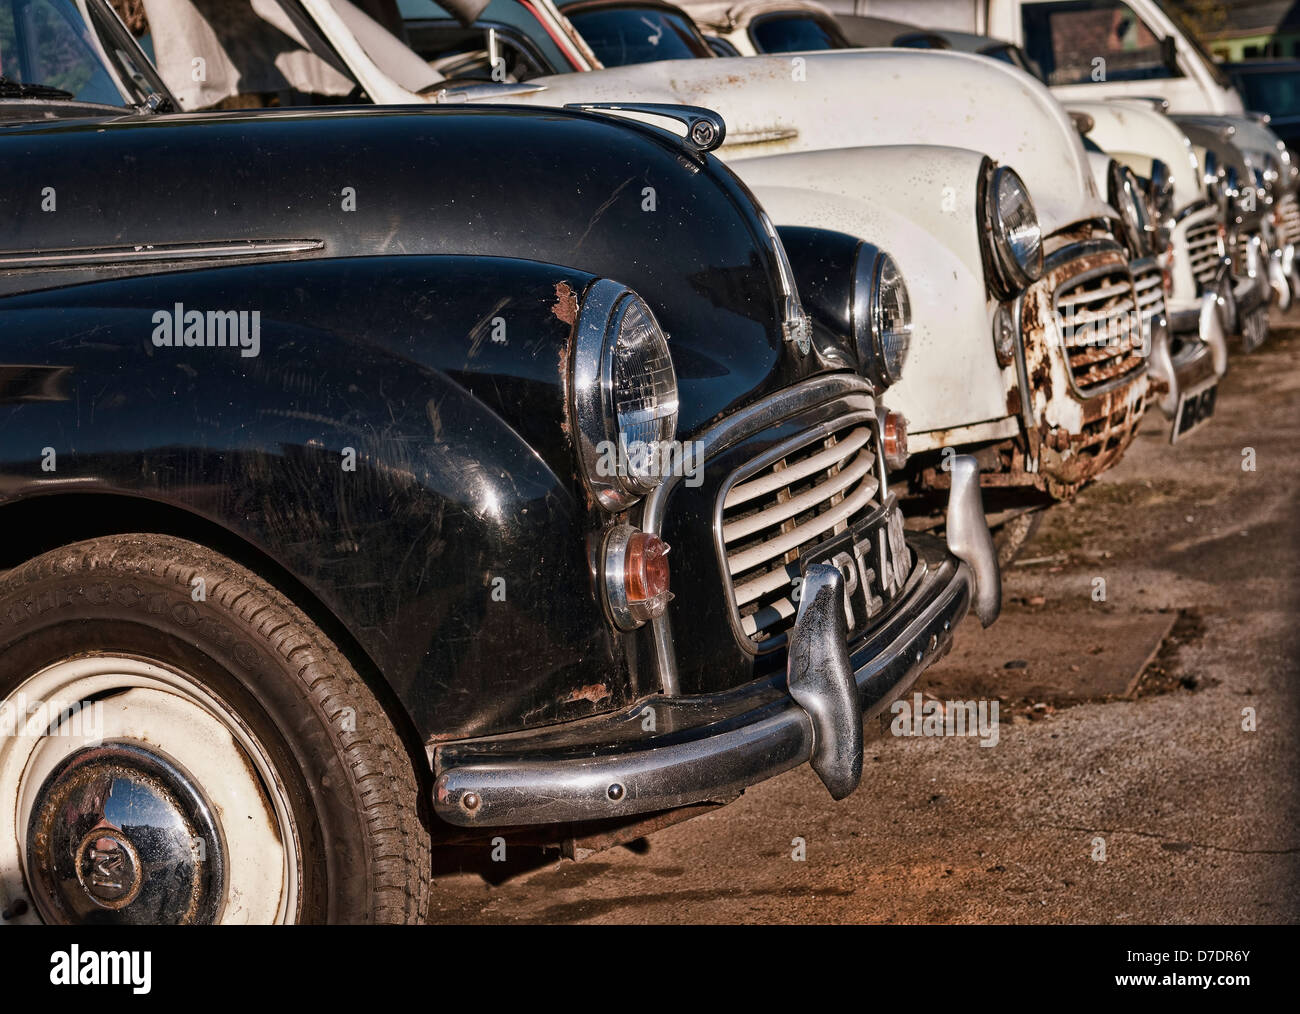 Old Morris Minor Cars for Restoration Stock Photo, Royalty Free ...